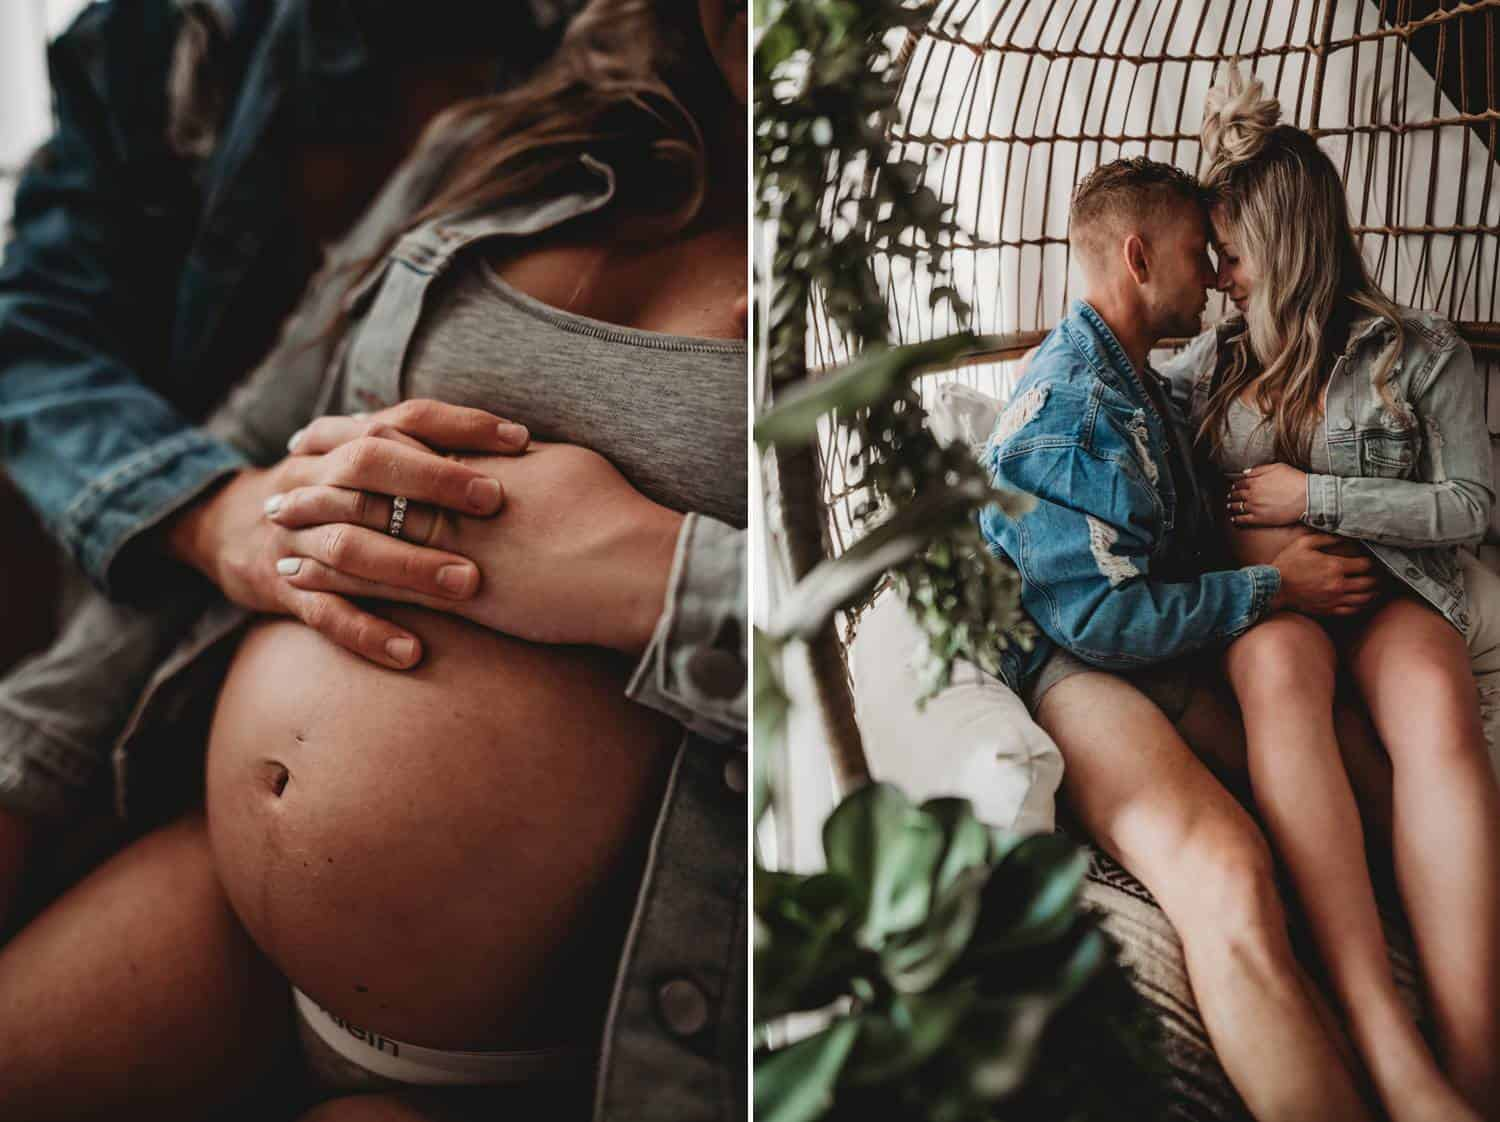 Two photos: the photo on the left is a close-up of a pregnant woman's belly. She's wearing white Calvin Klein underwear and a grey sports bra under a grey cardigan. The mother-to-be's partner holds her sitting in his lap where he rests his hand on her stomach. In the right-side photo, a wider shot of the same scene is taken, and you can see the oversize rattan chair that the couple is sitting in.